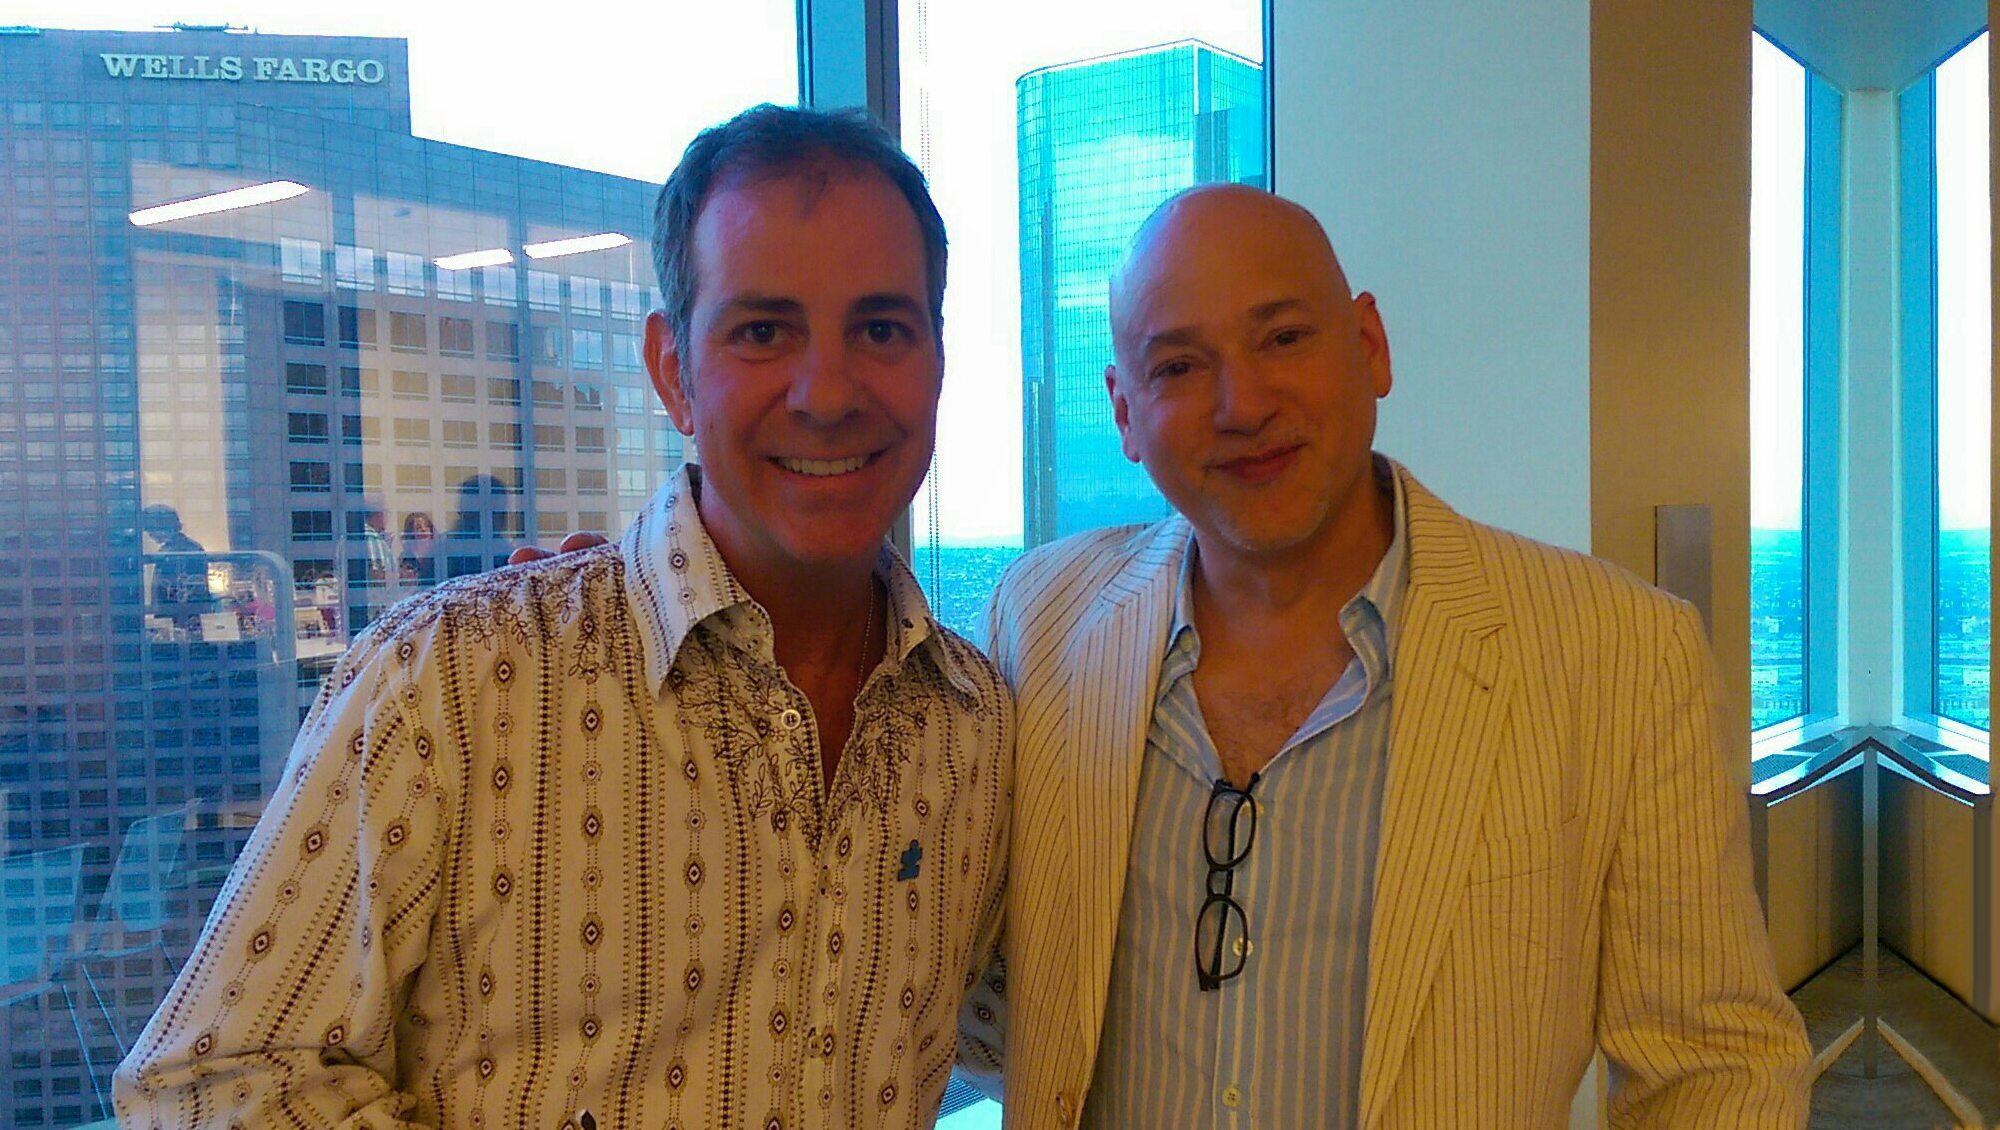 Philip Warbasse and Evan Handler